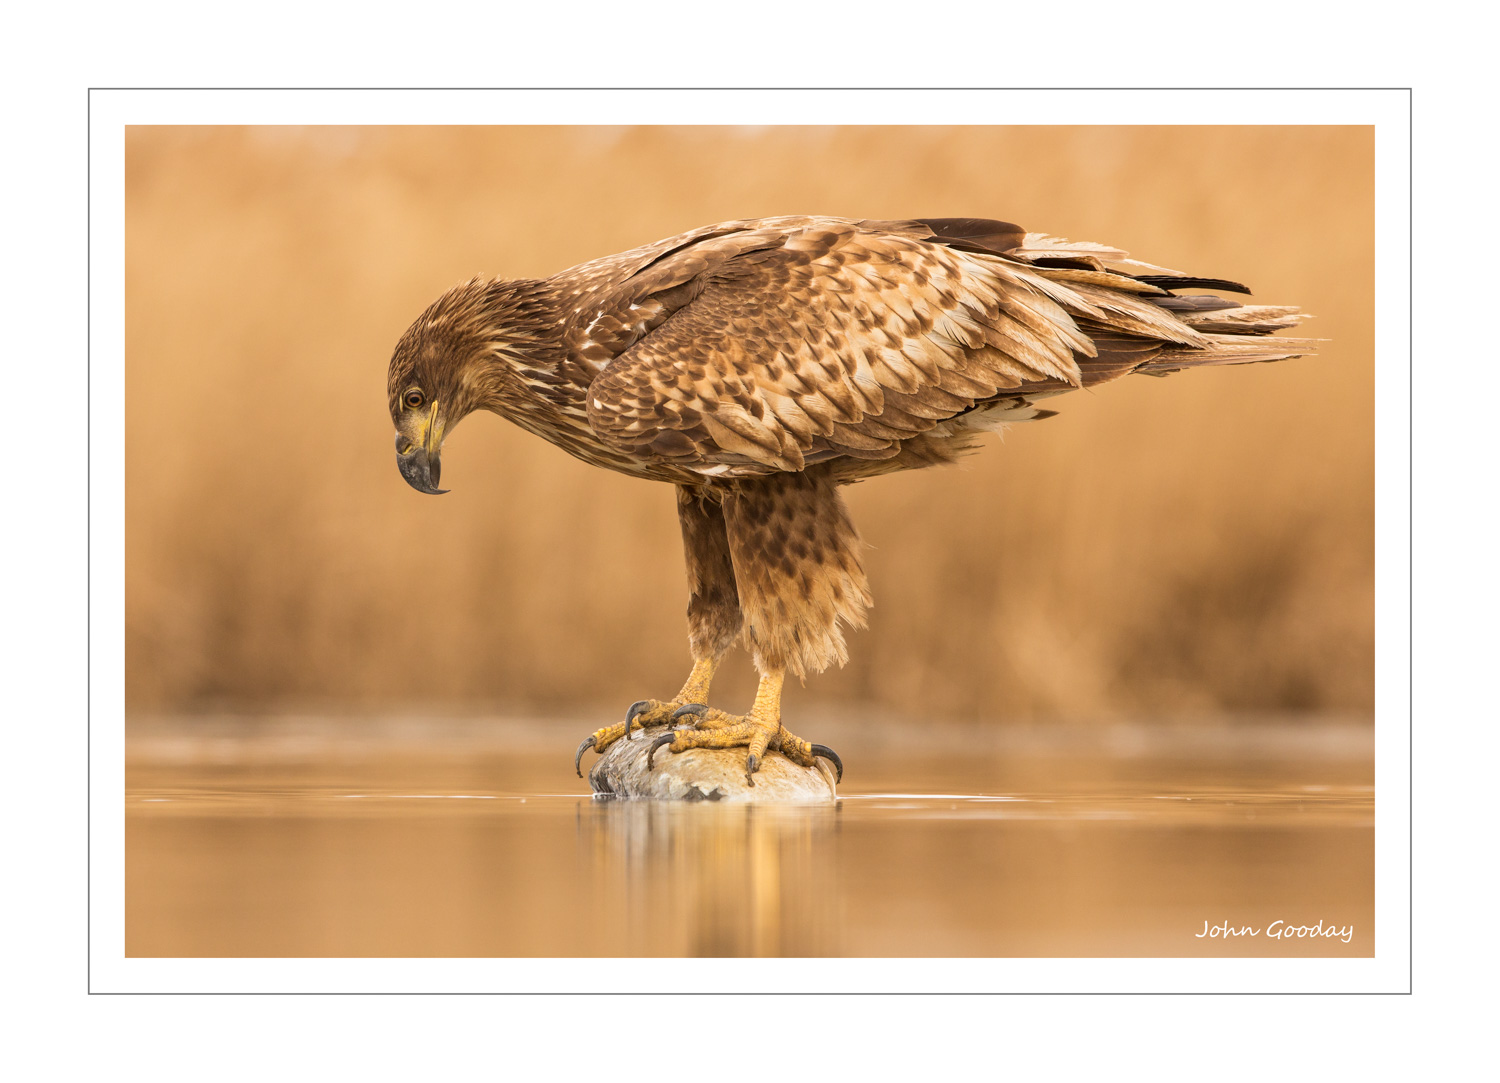 (Image: White-tailed Eagle. Canon EOS 5D Mark III, EF300mm f/2.8L IS, 1/500 sec @ f/5.6, ISO 800, tripod, hide)